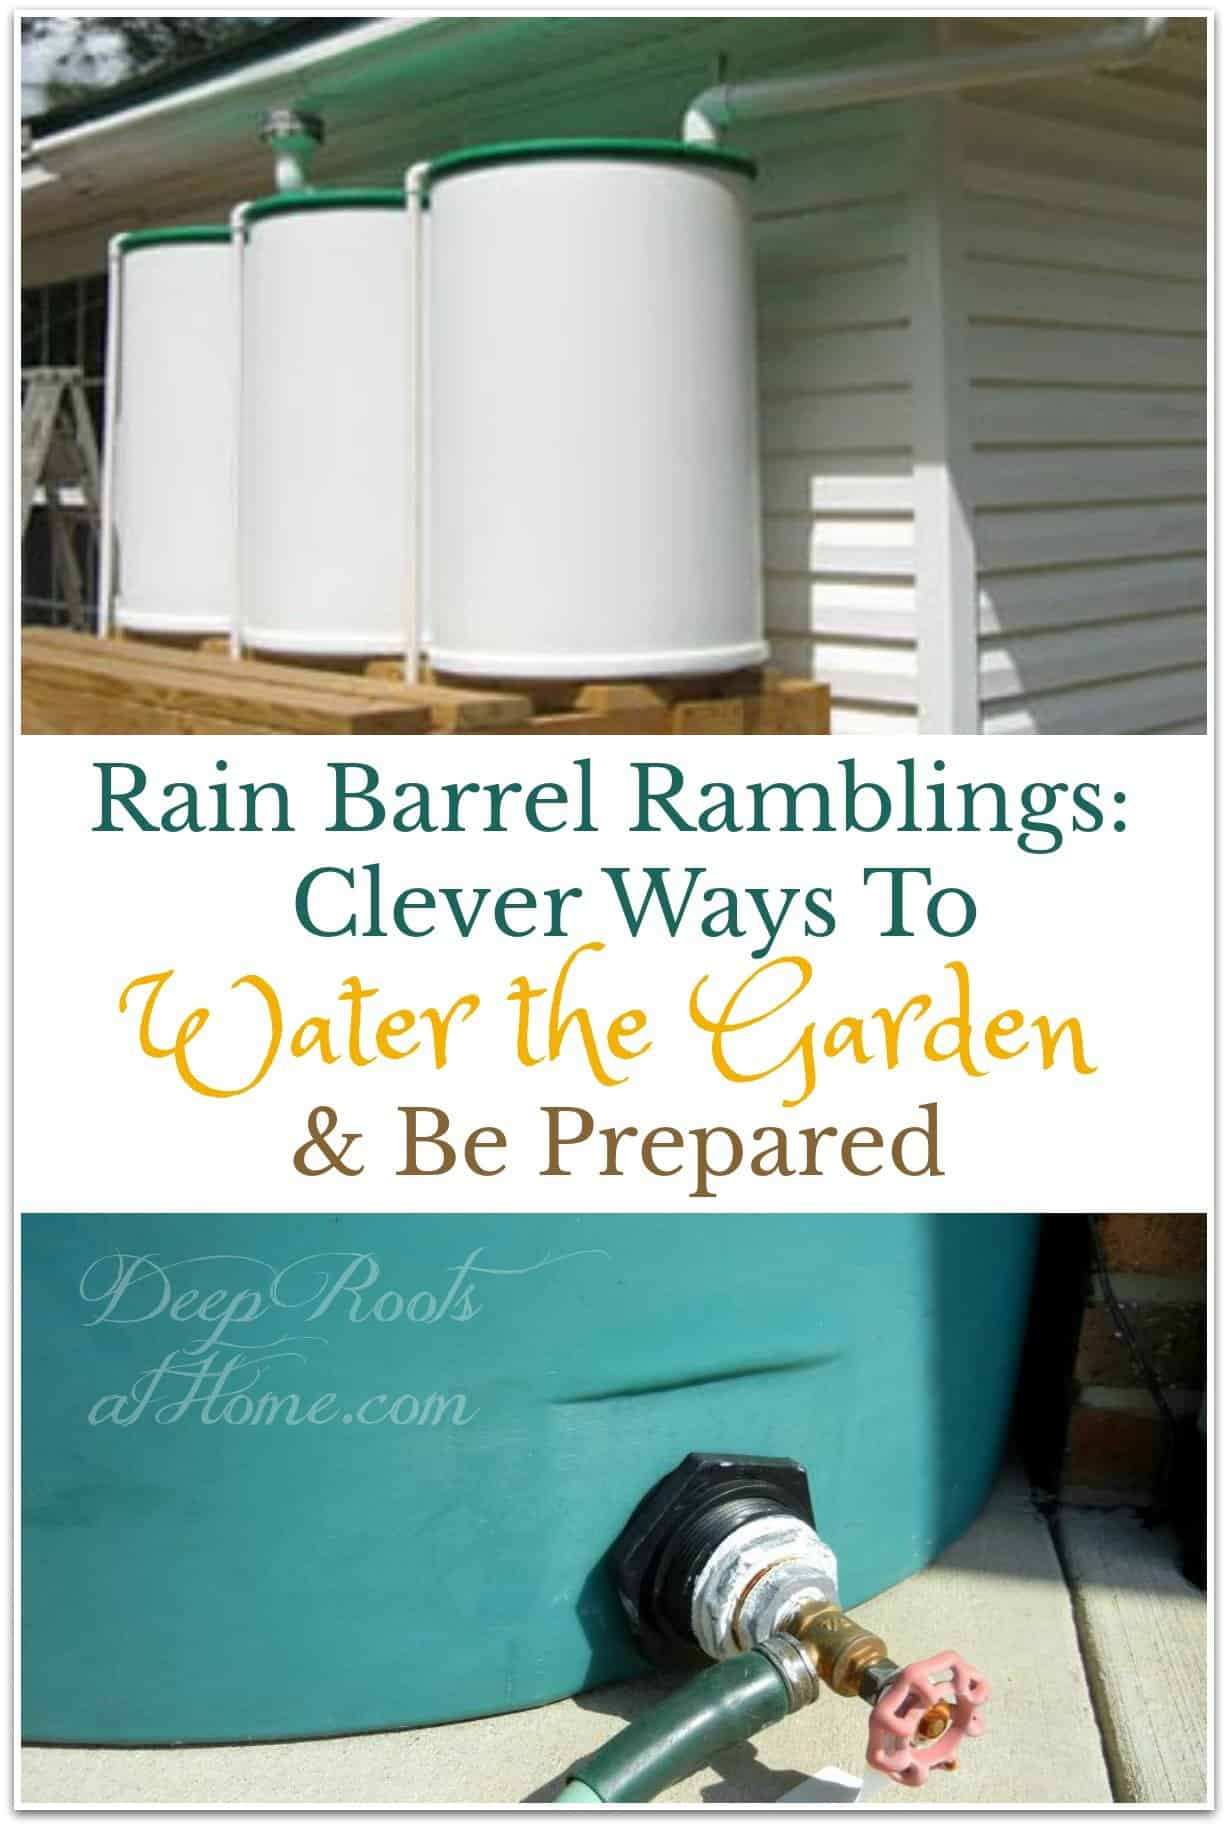 Rain Barrel Ramblings: Clever Ways To Water the Garden & Be Prepared. rain collection barrels